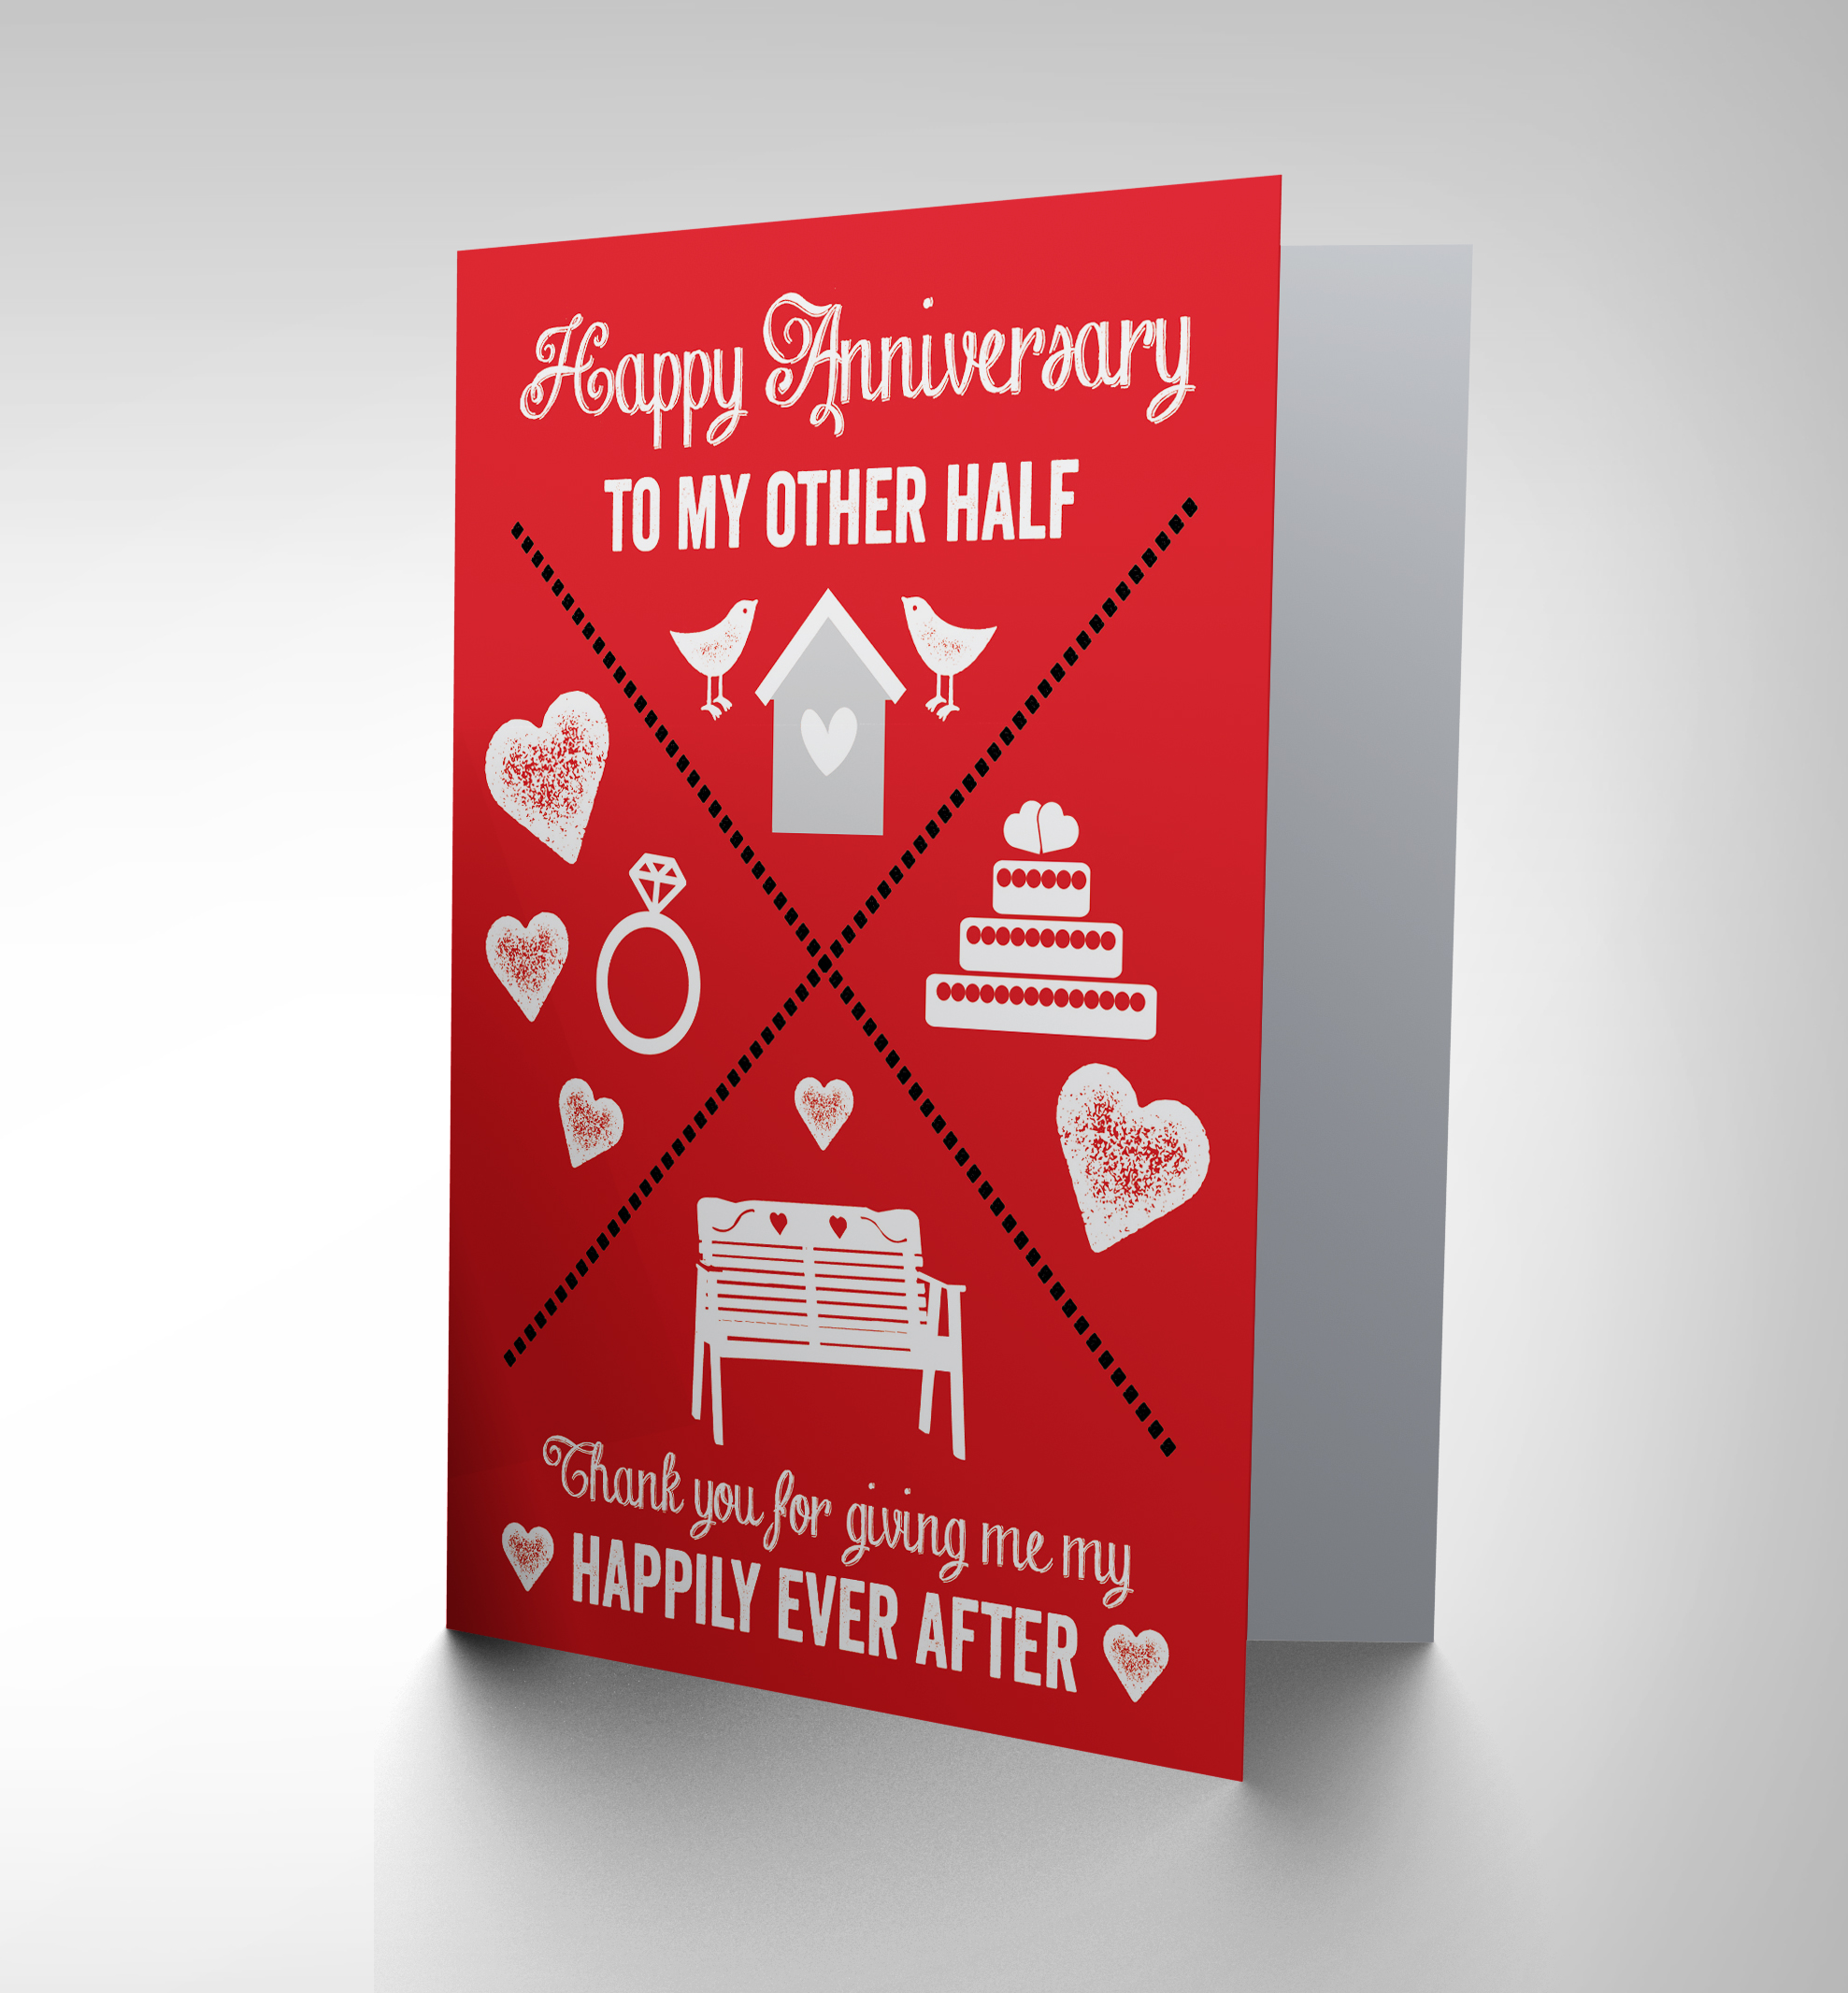 Wedding Gift Card Australia : CARD GREETING ANNIVERSARY HAPPY HAPPILY EVER AFTER WEDDING GIFT CP2741 ...